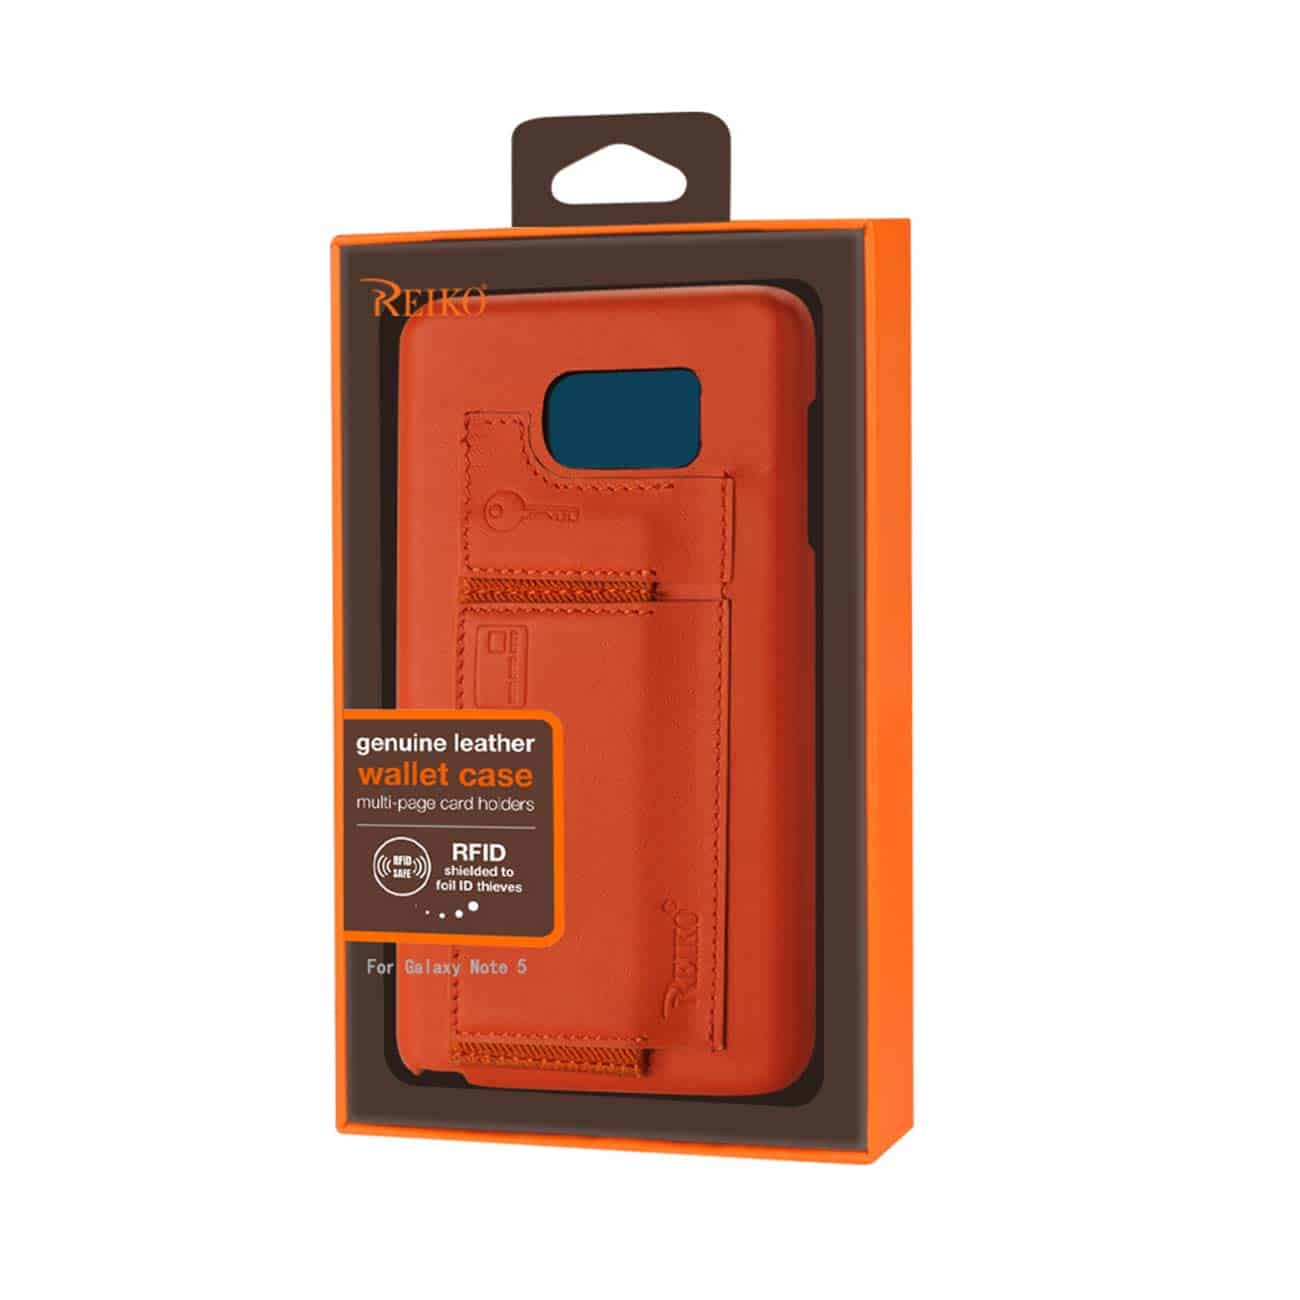 SAMSUNG GALAXY NOTE 5 RFID GENUINE LEATHER CASE PROTECTION AND KEY HOLDER IN TANGERINE